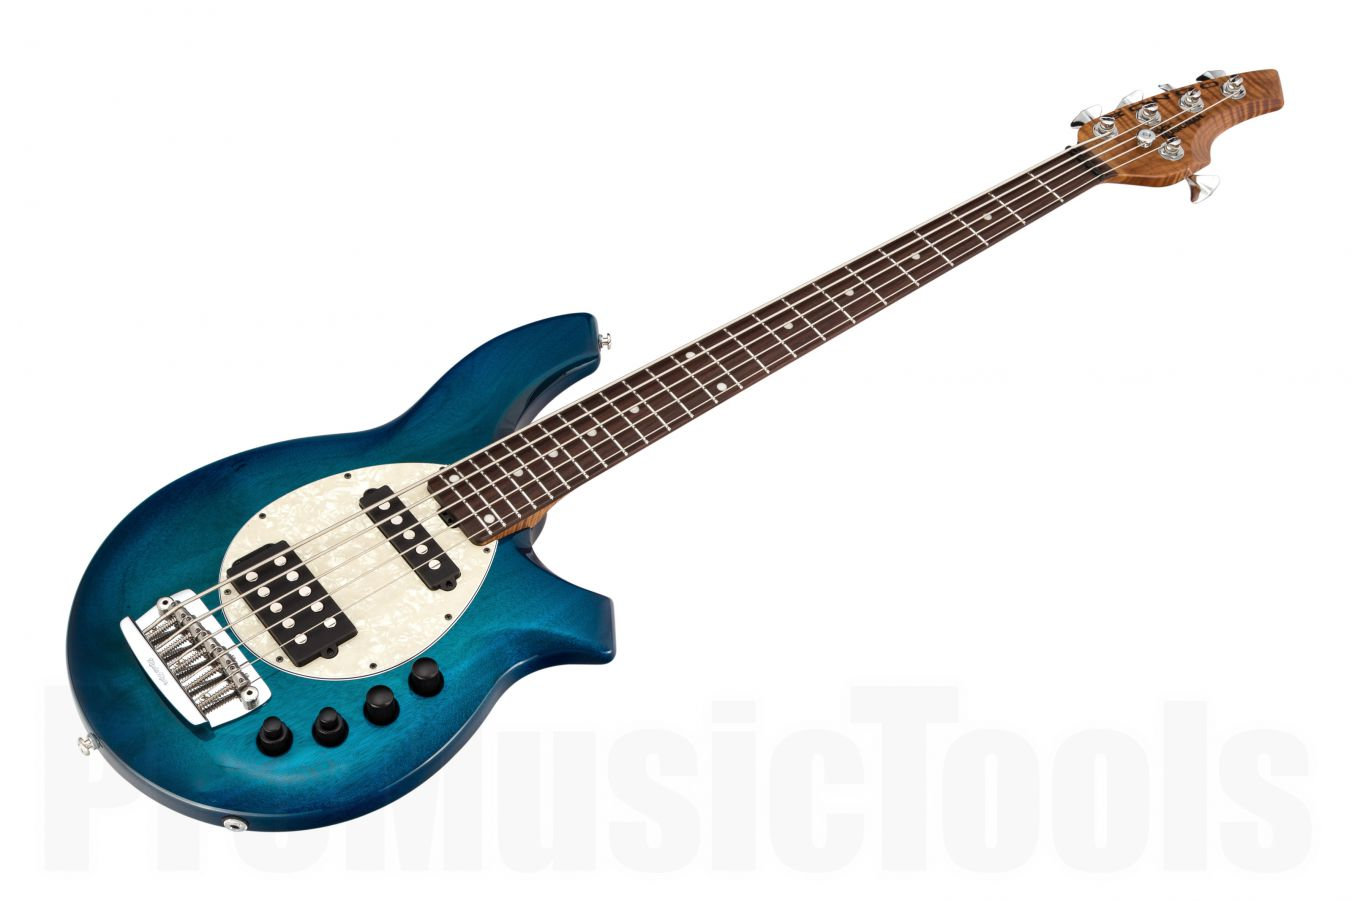 Music Man USA Bongo 5 HS NB - PDN Neptune Blue Roasted Neck Limited Edition RW PV